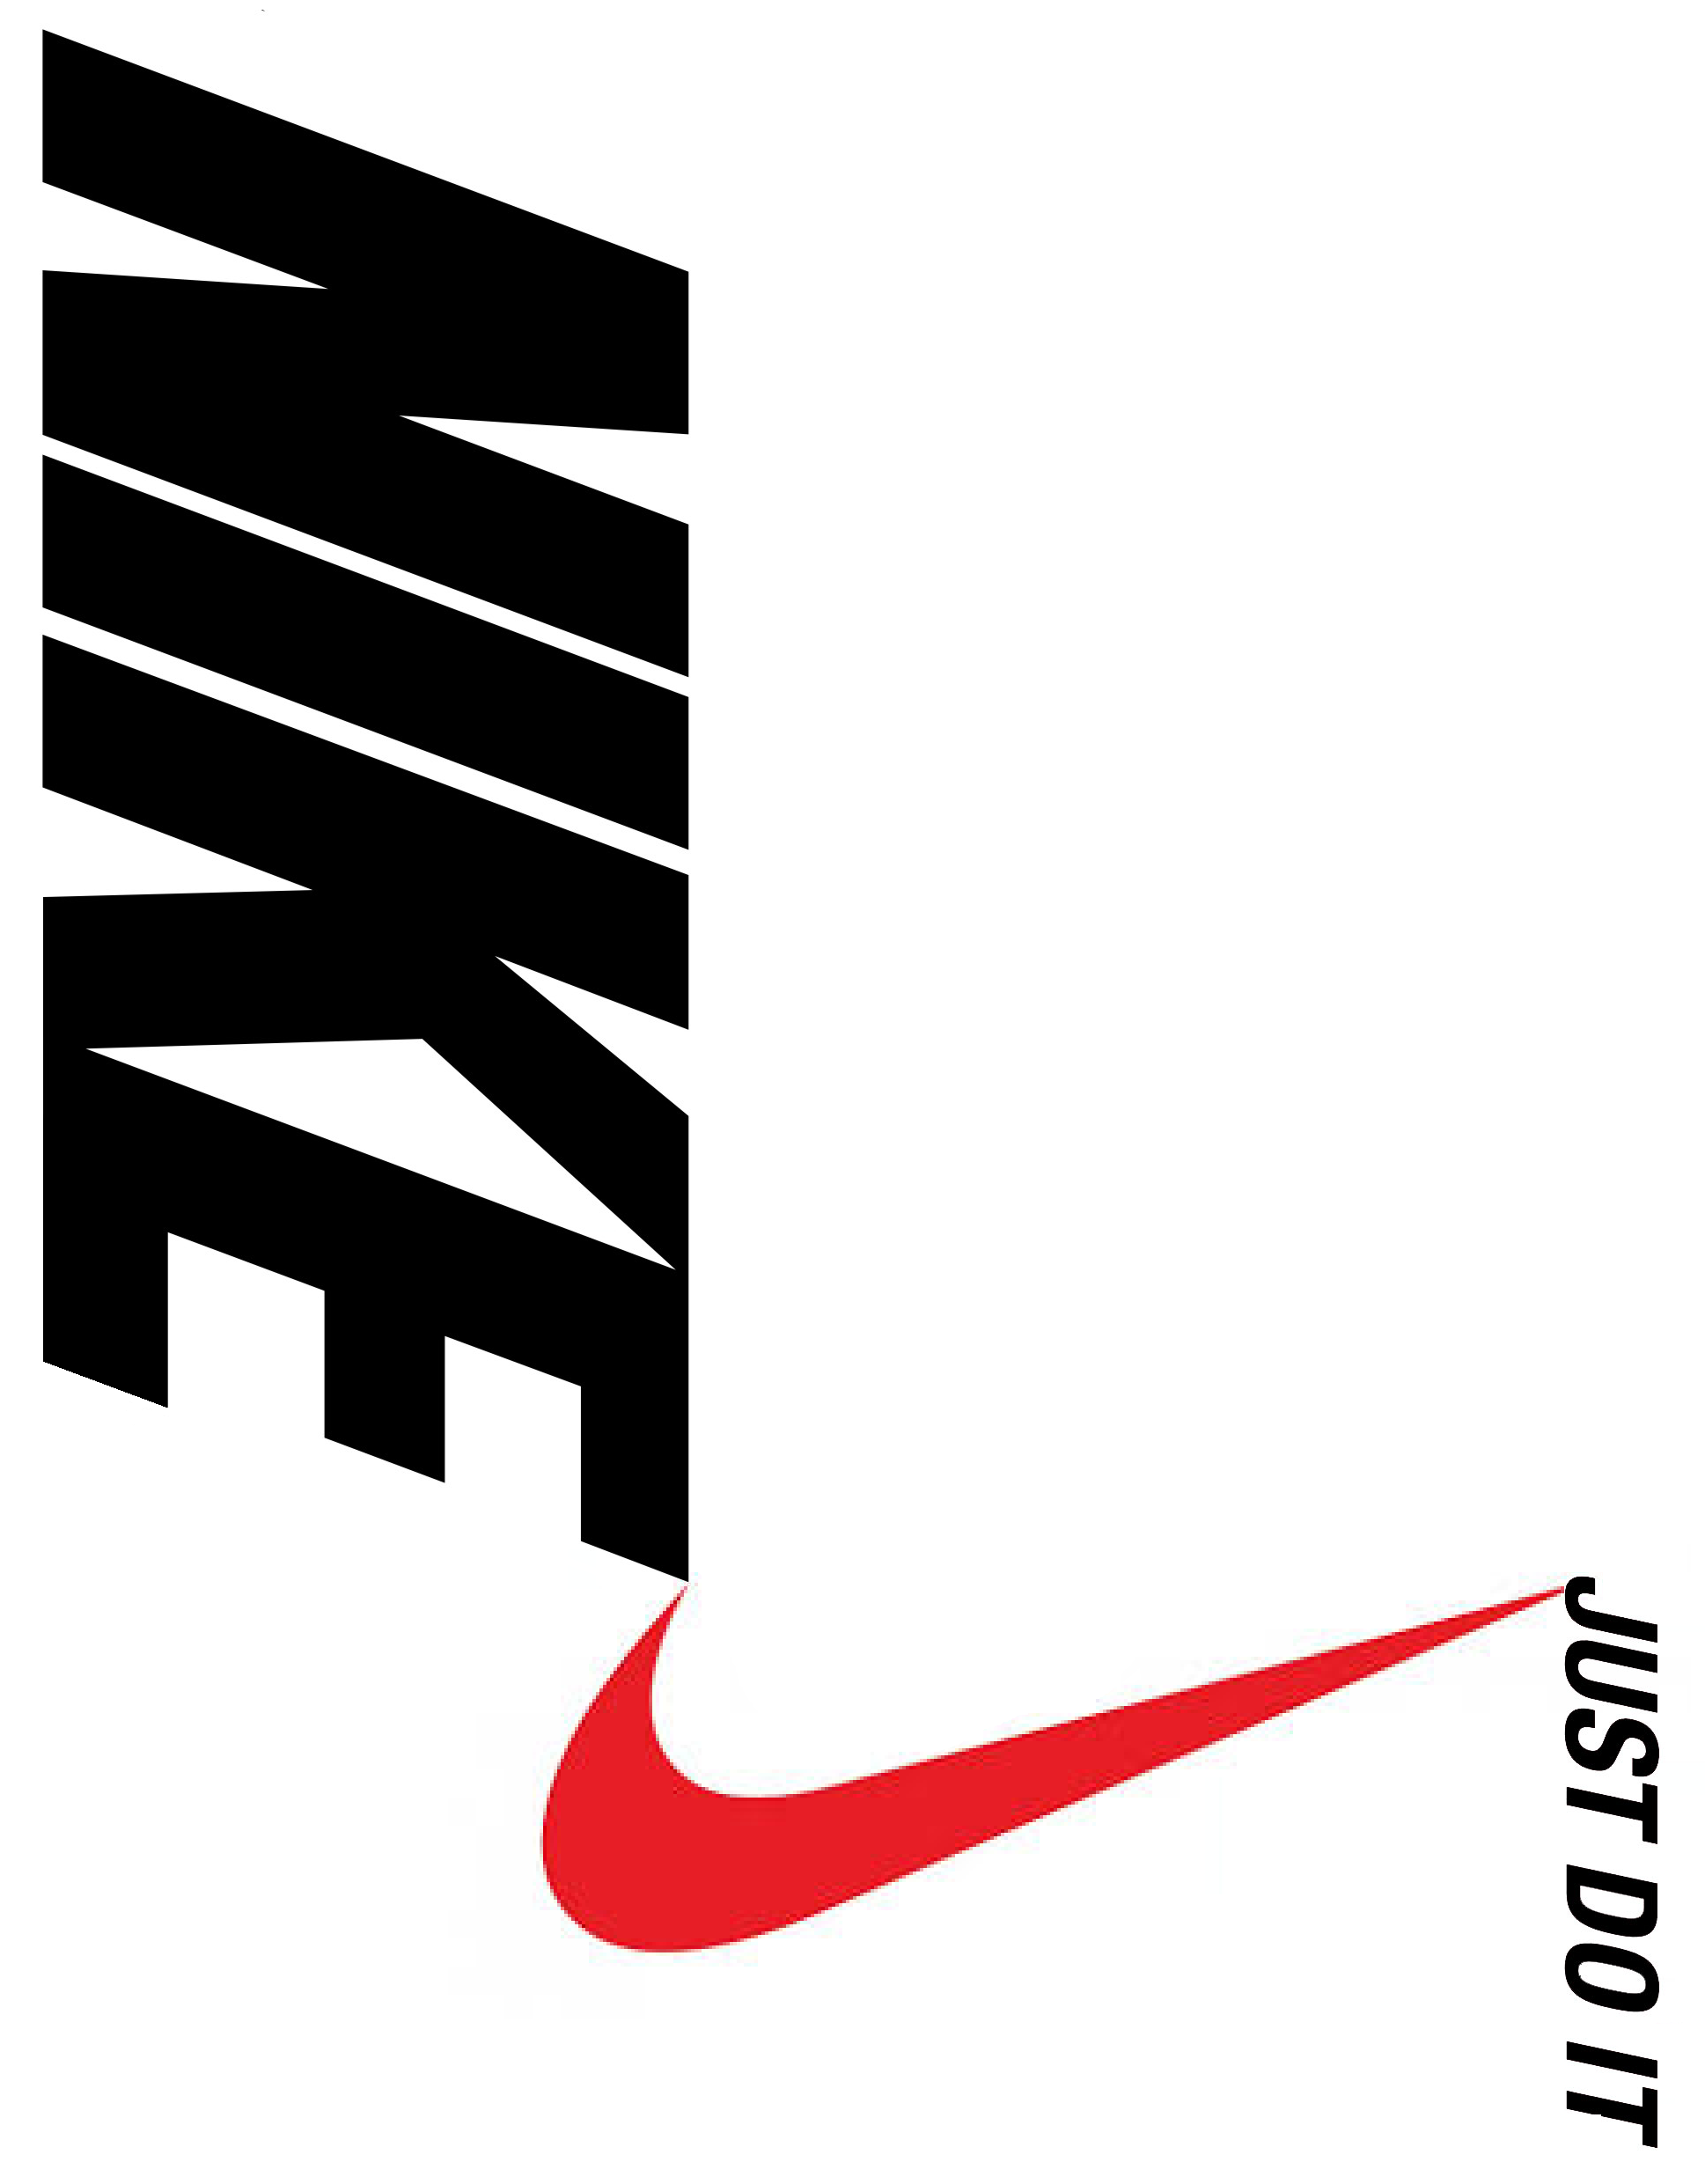 Nike Just Do It Phone Wallpaper Background Screensaver Nike Screensavers Nike Wallpaper Nike Background